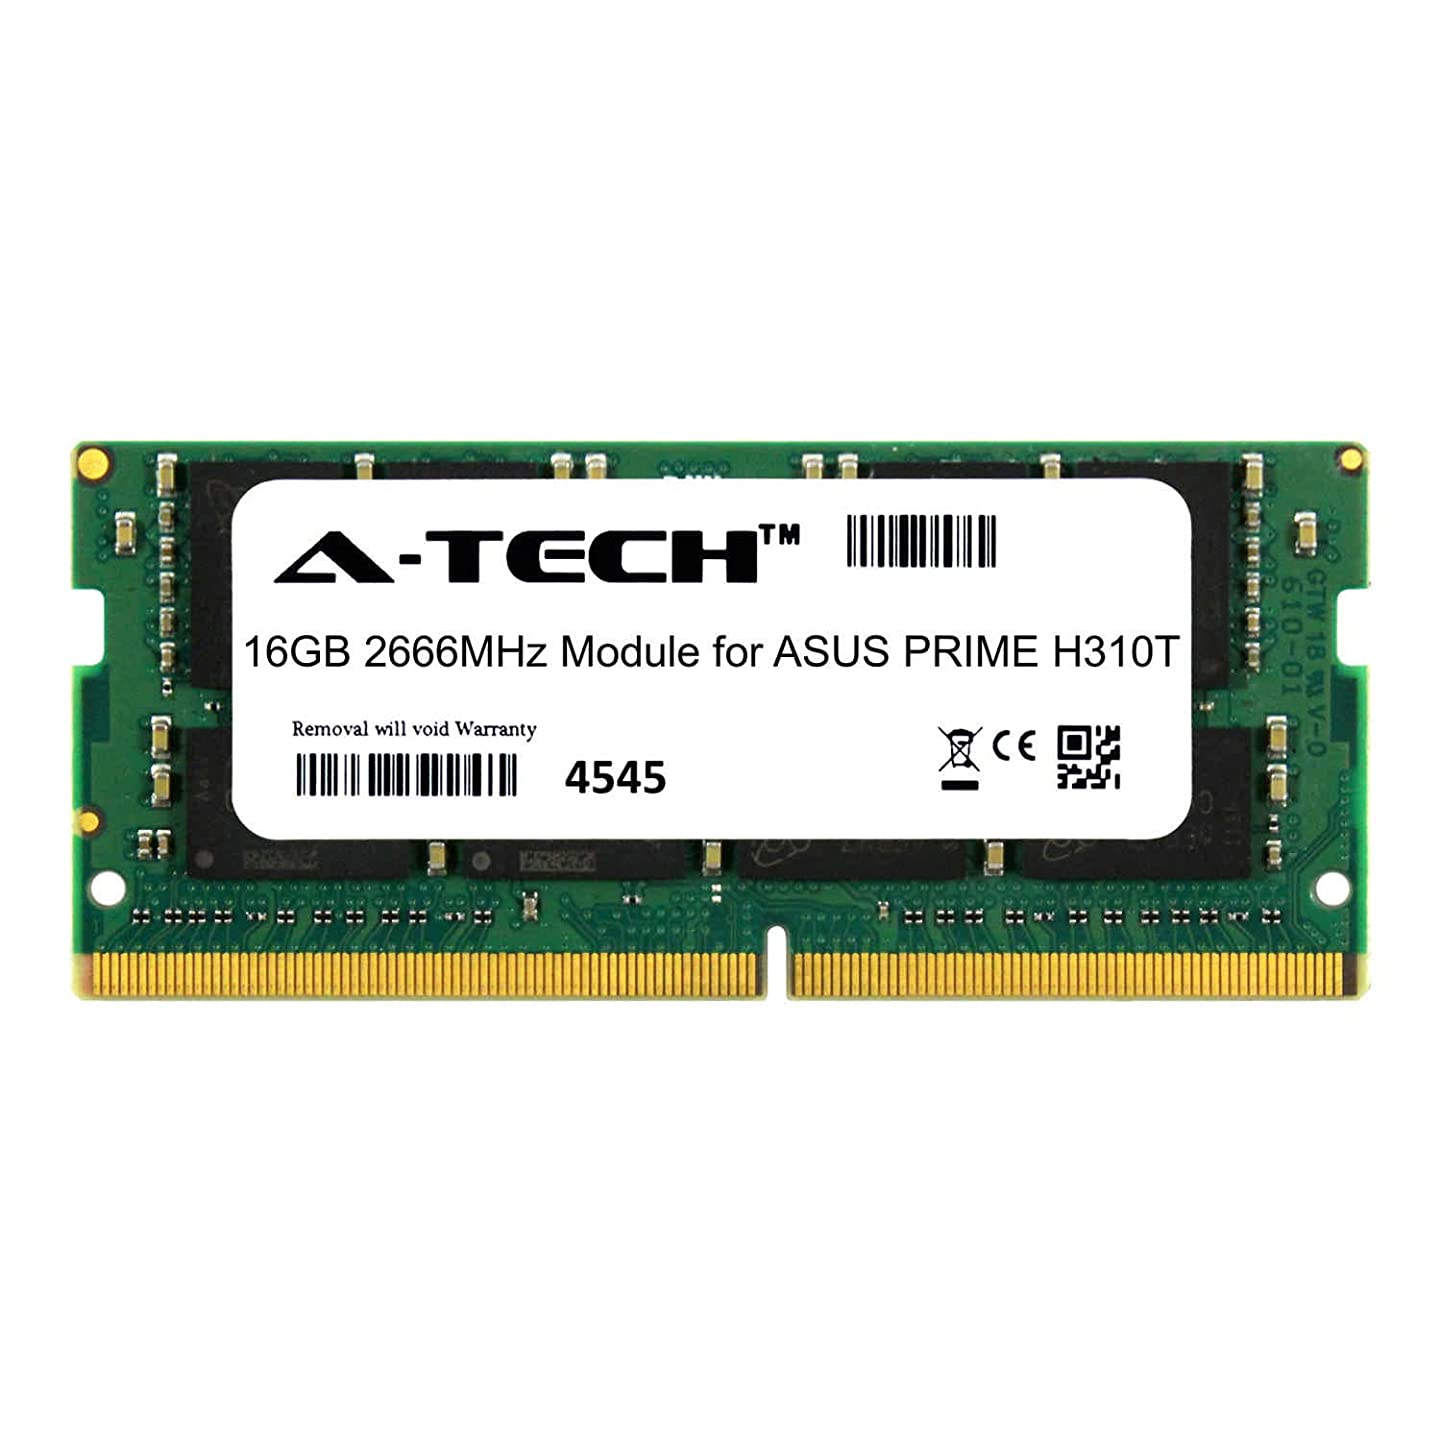 A-Tech 16GB Module for ASUS Prime H310T Laptop & Notebook Compatible DDR4 2666Mhz Memory Ram (ATMS322320A25832X1)